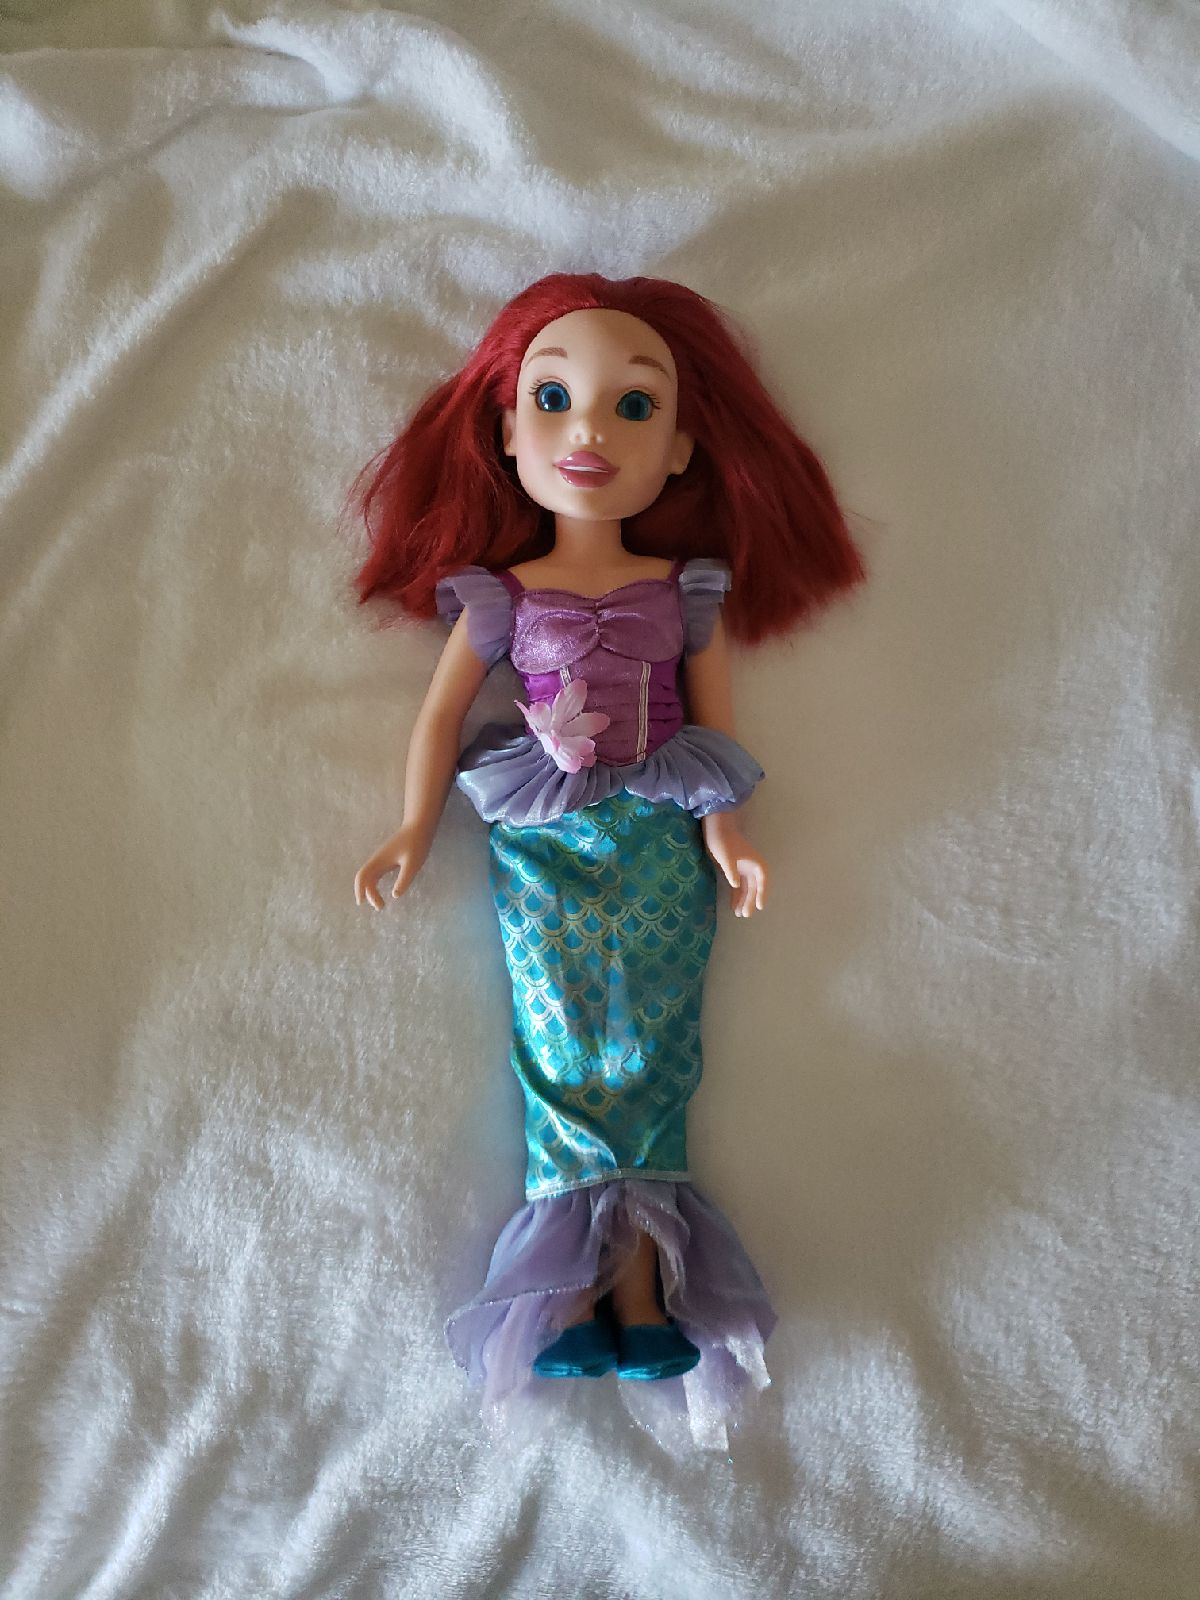 Ariel Doll - 18 in. Doll with clothes